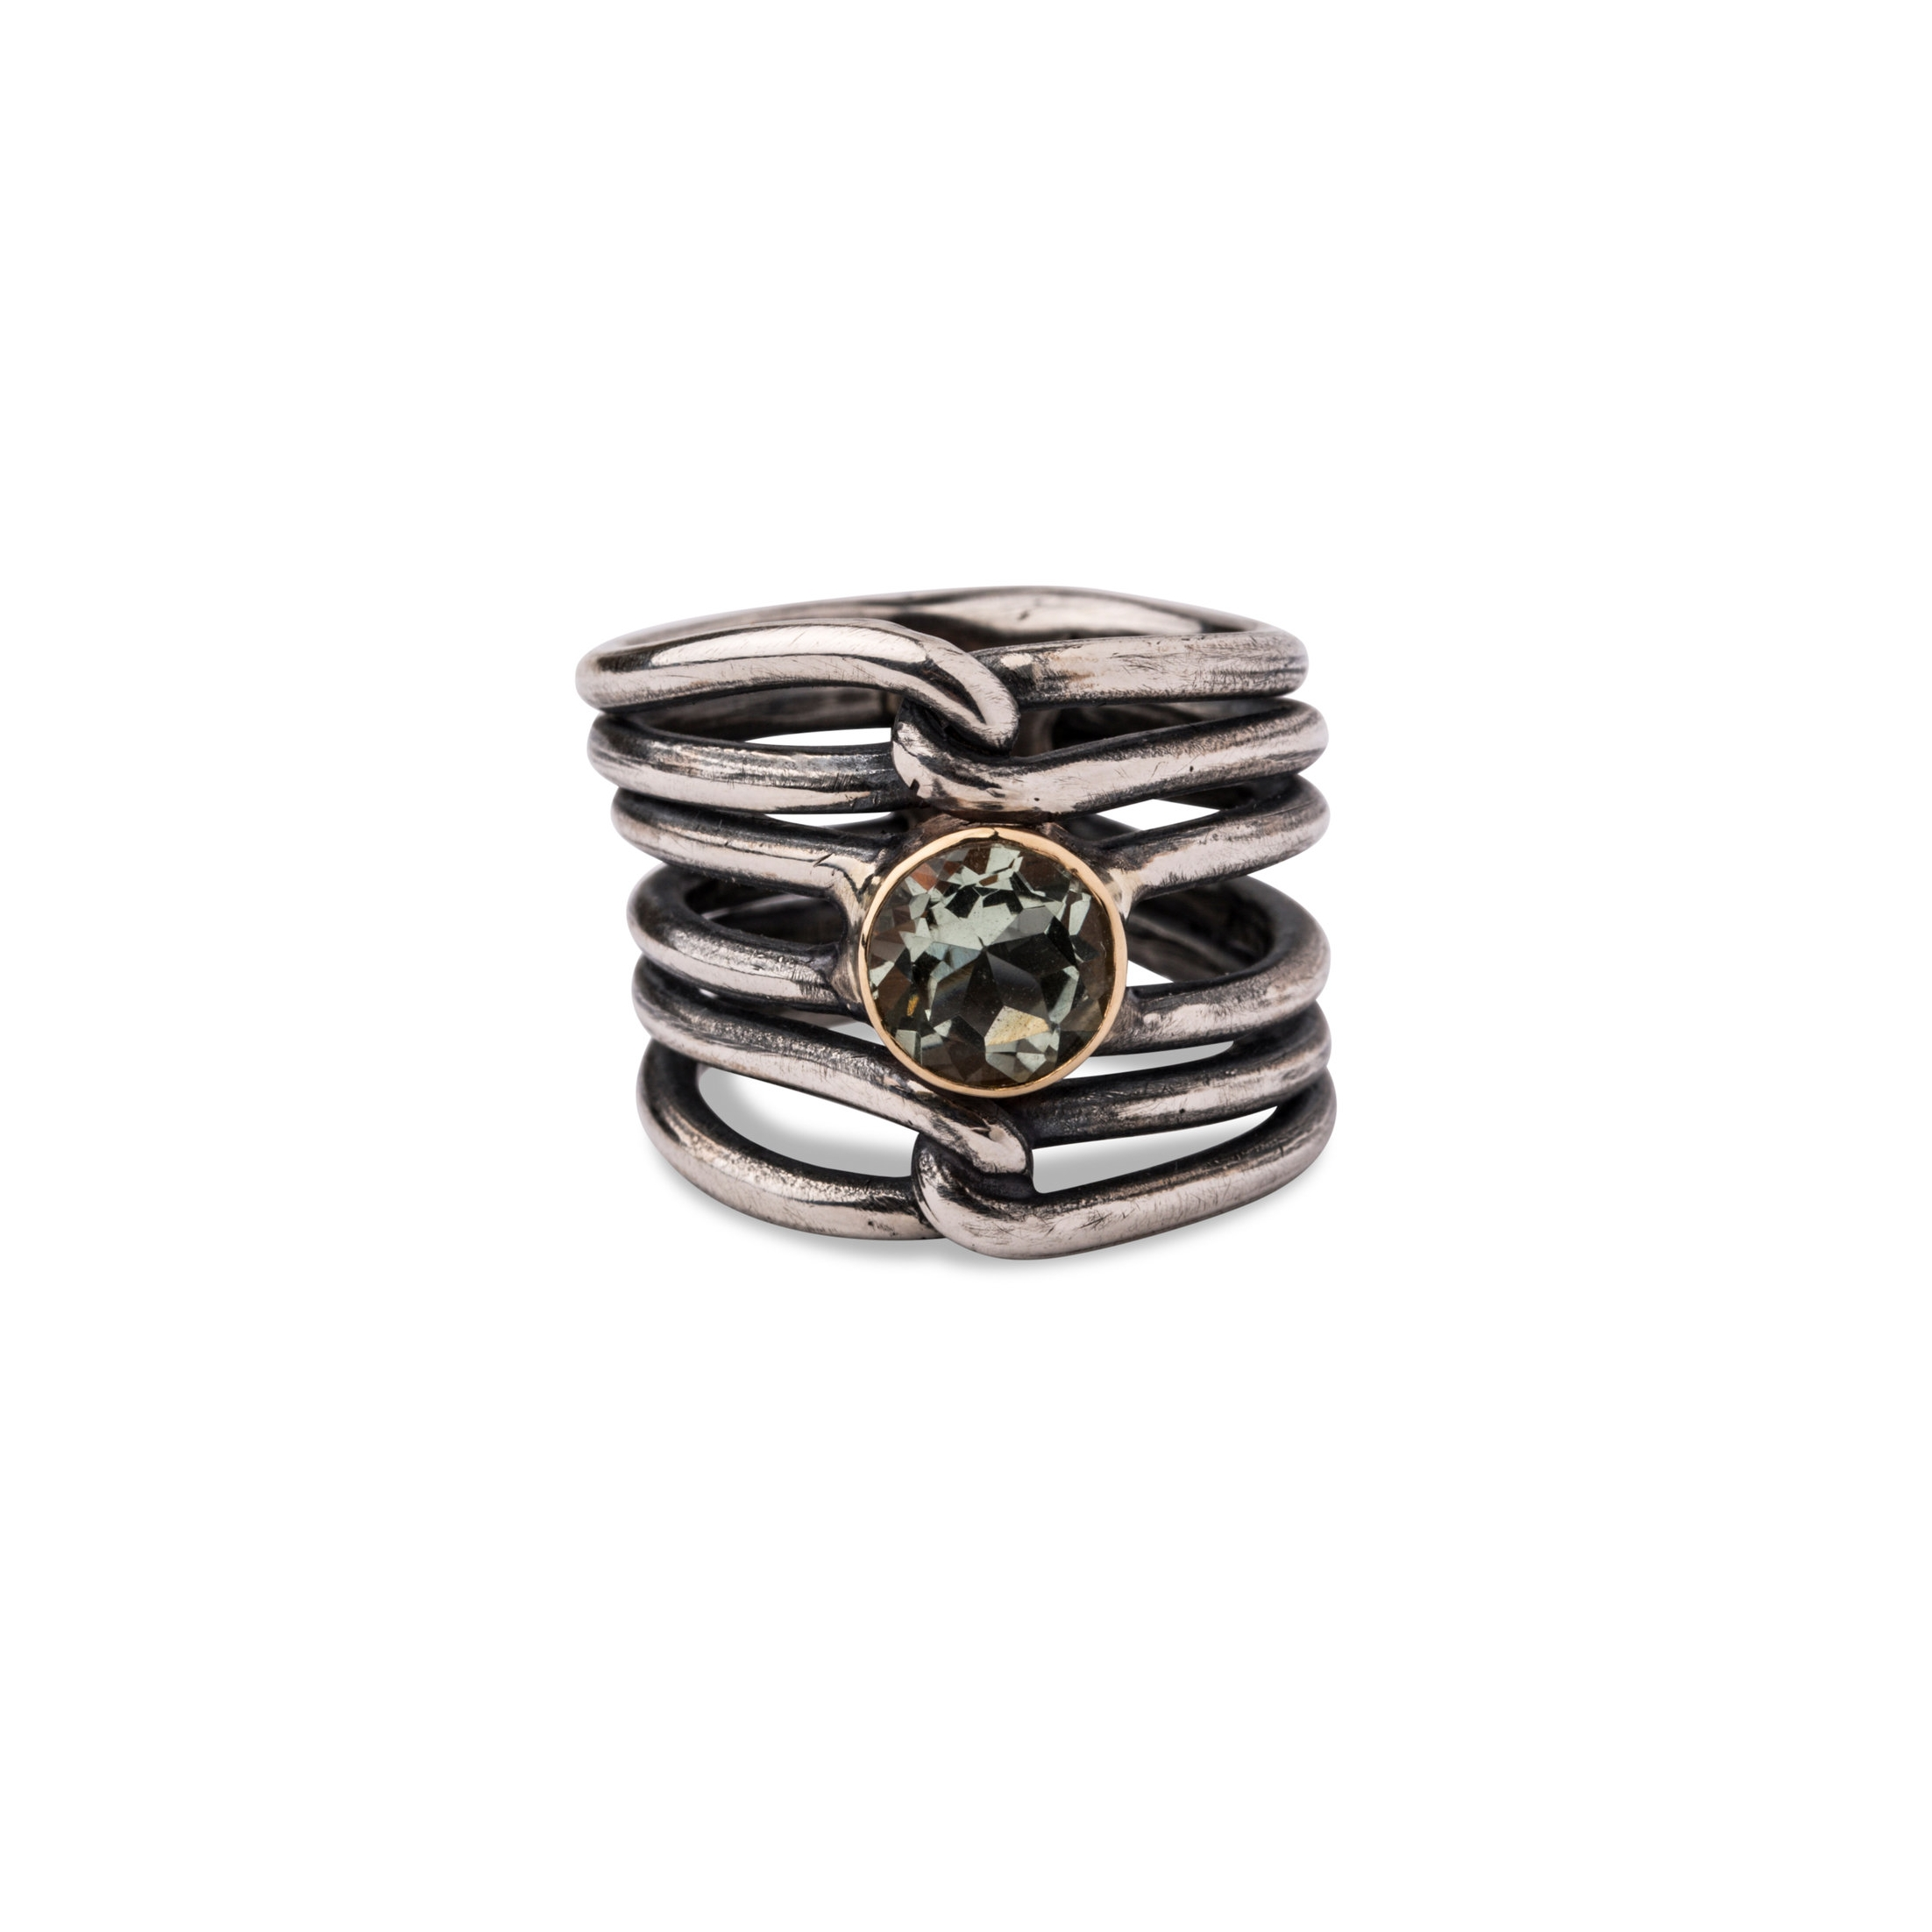 ring_lace_6202.JPG